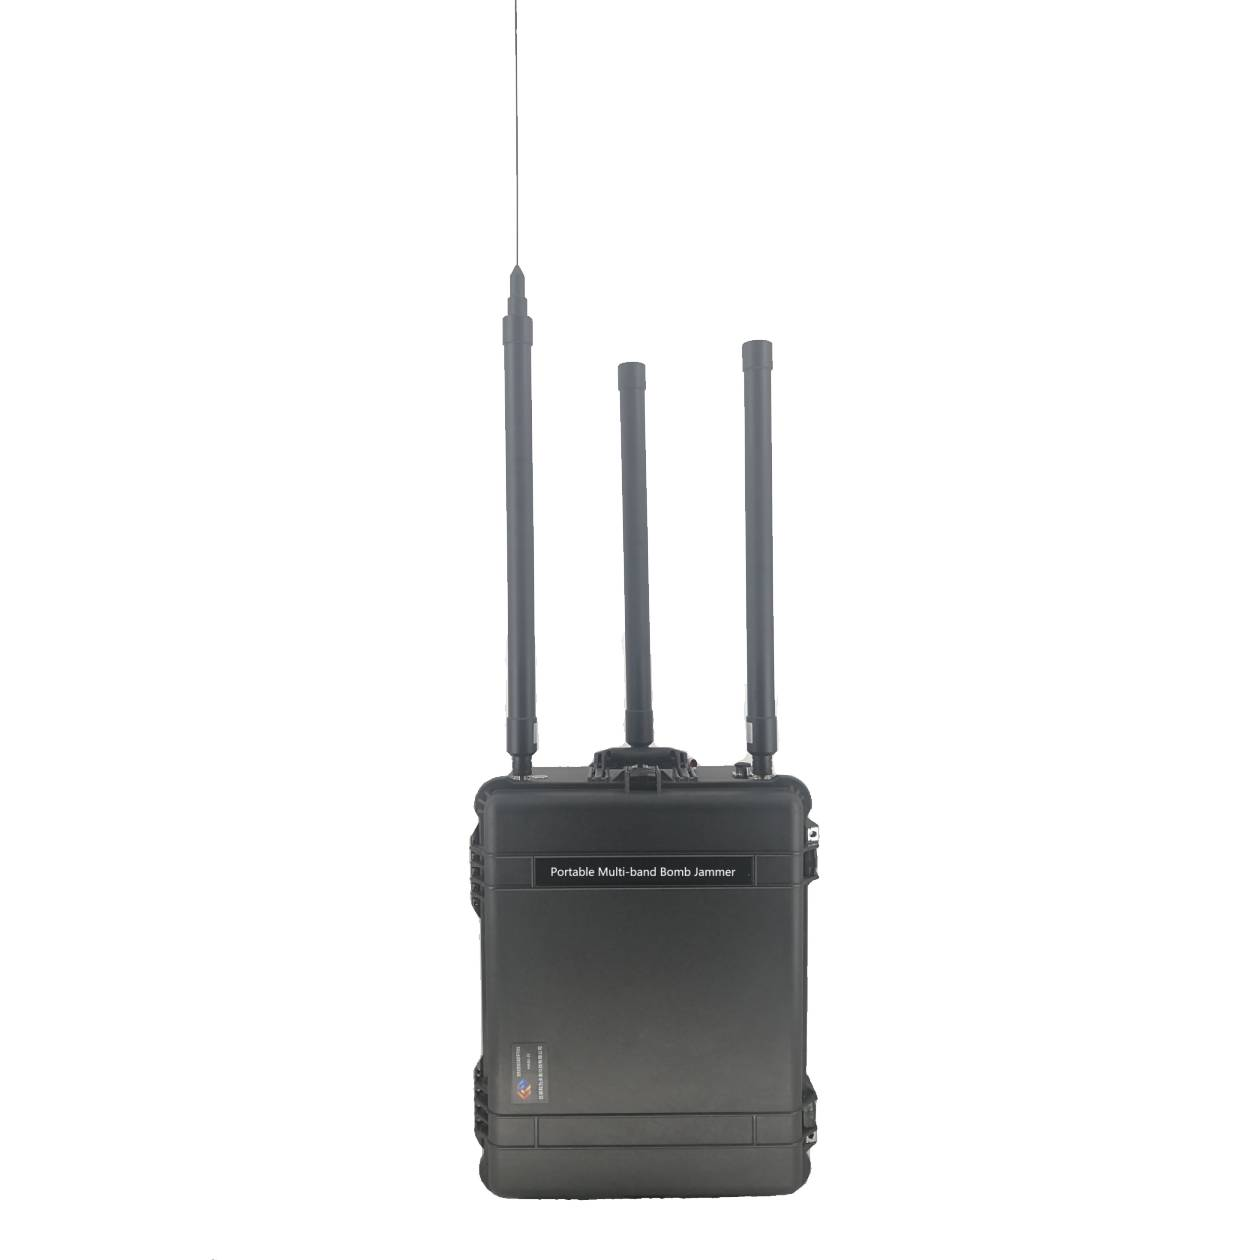 Portable Multi-band Bomb Jammer Featured Image